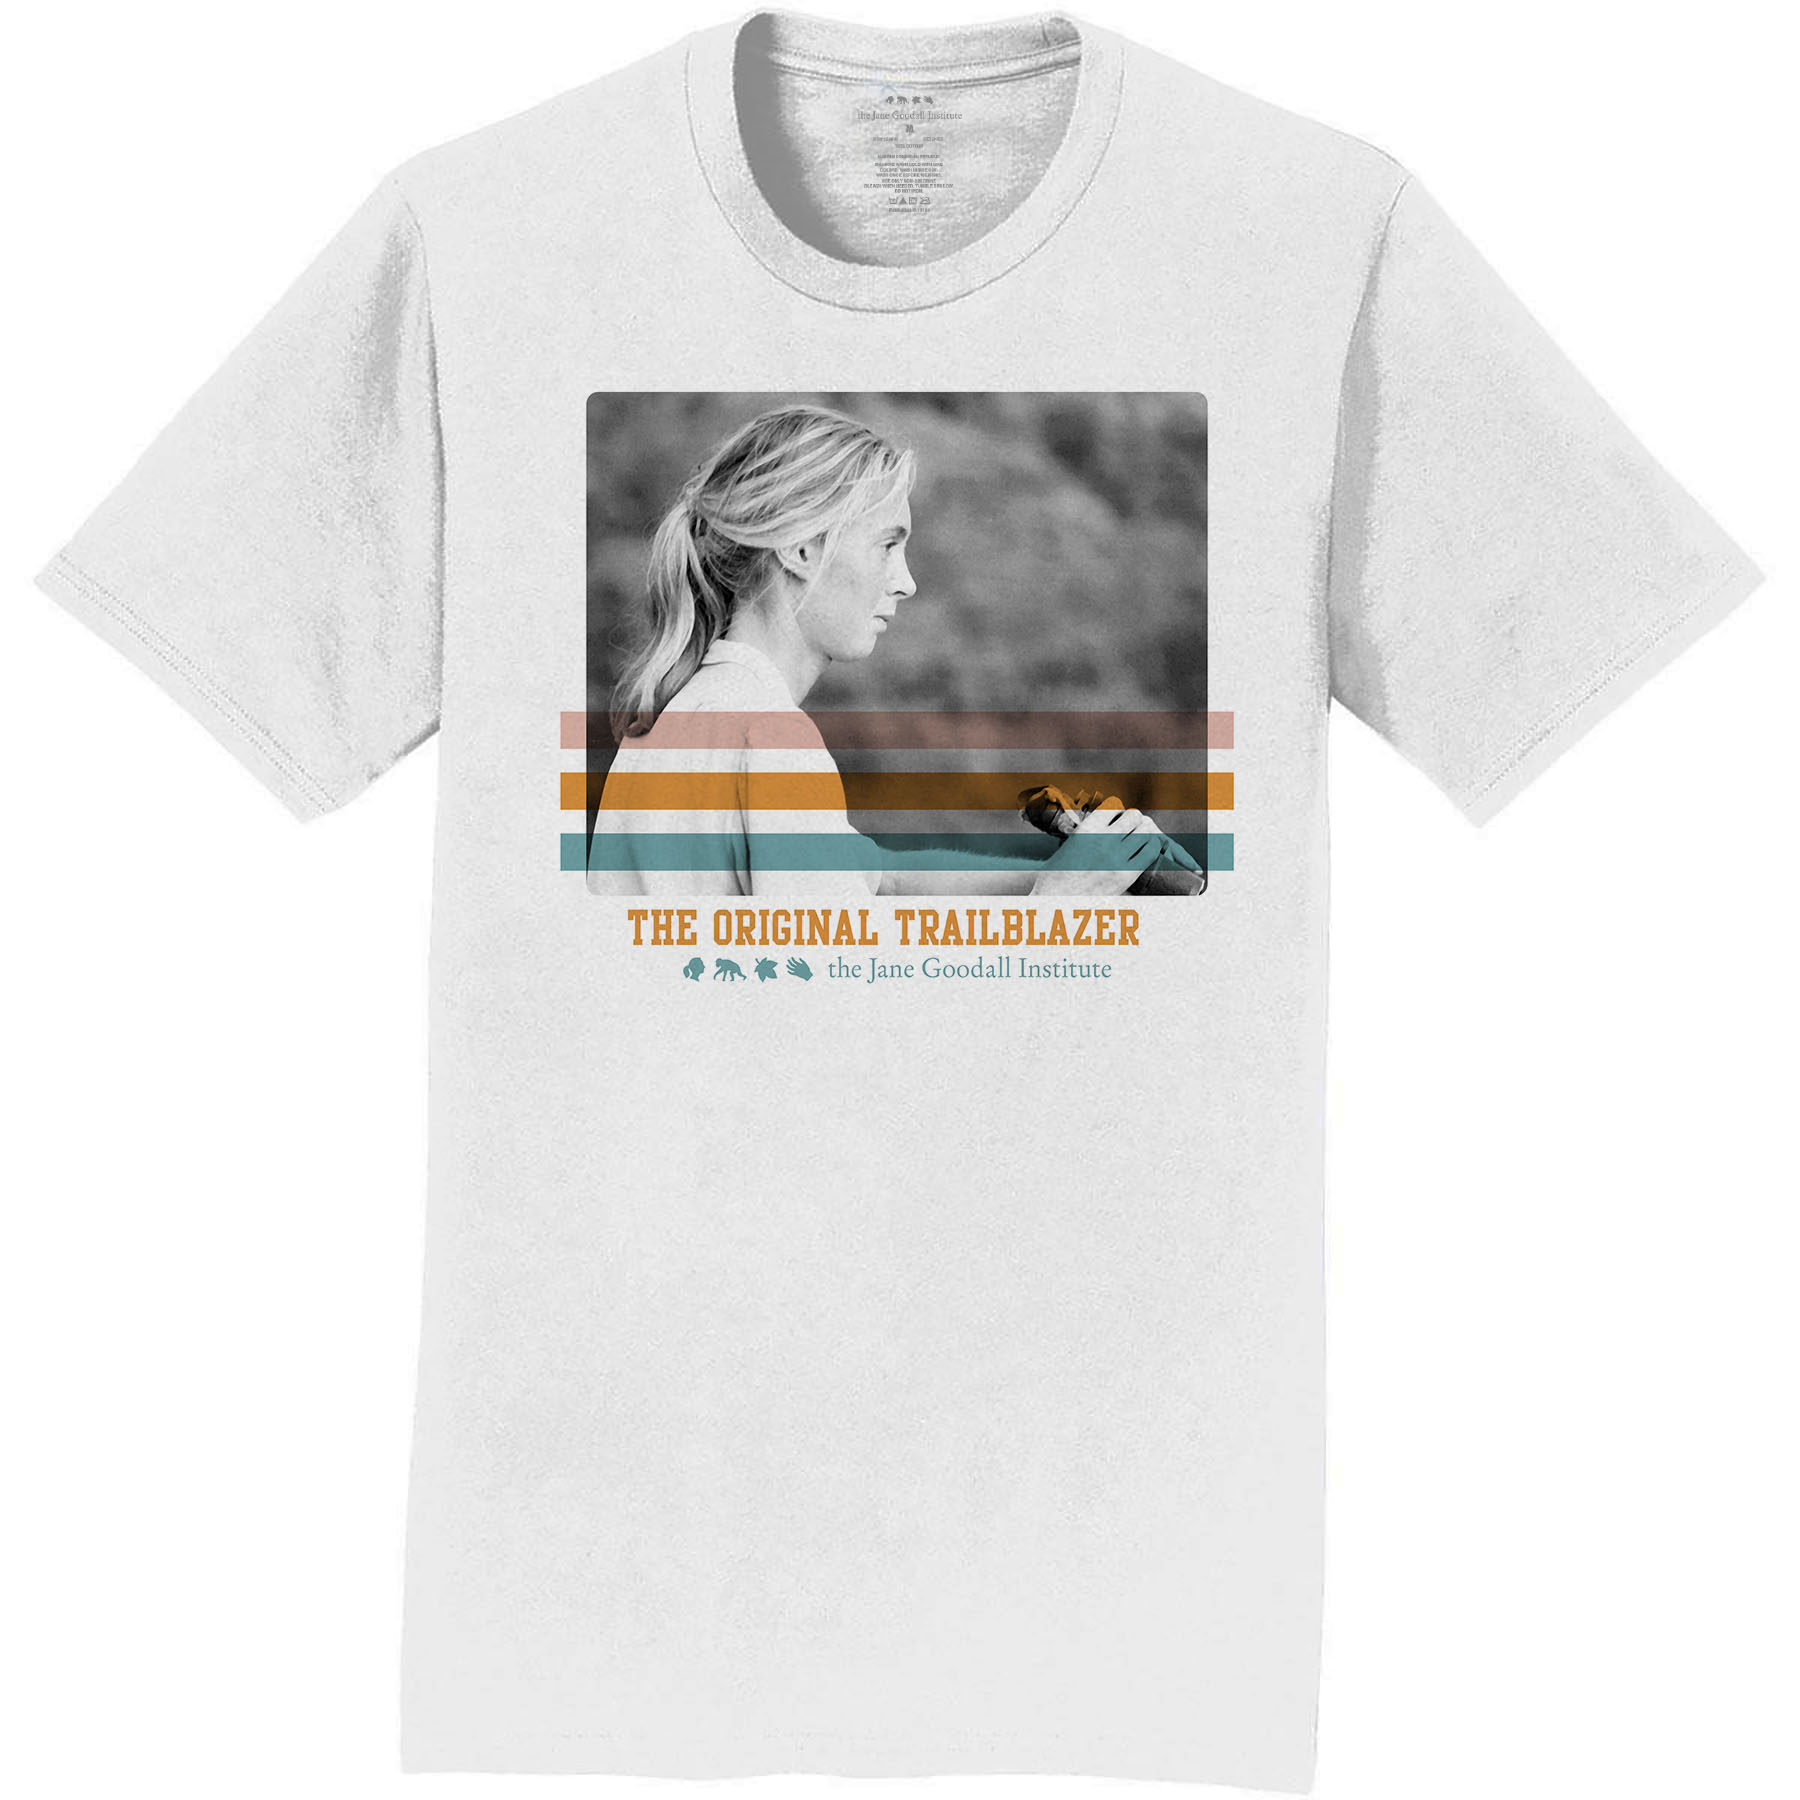 The Original Trailblazer T-Shirt